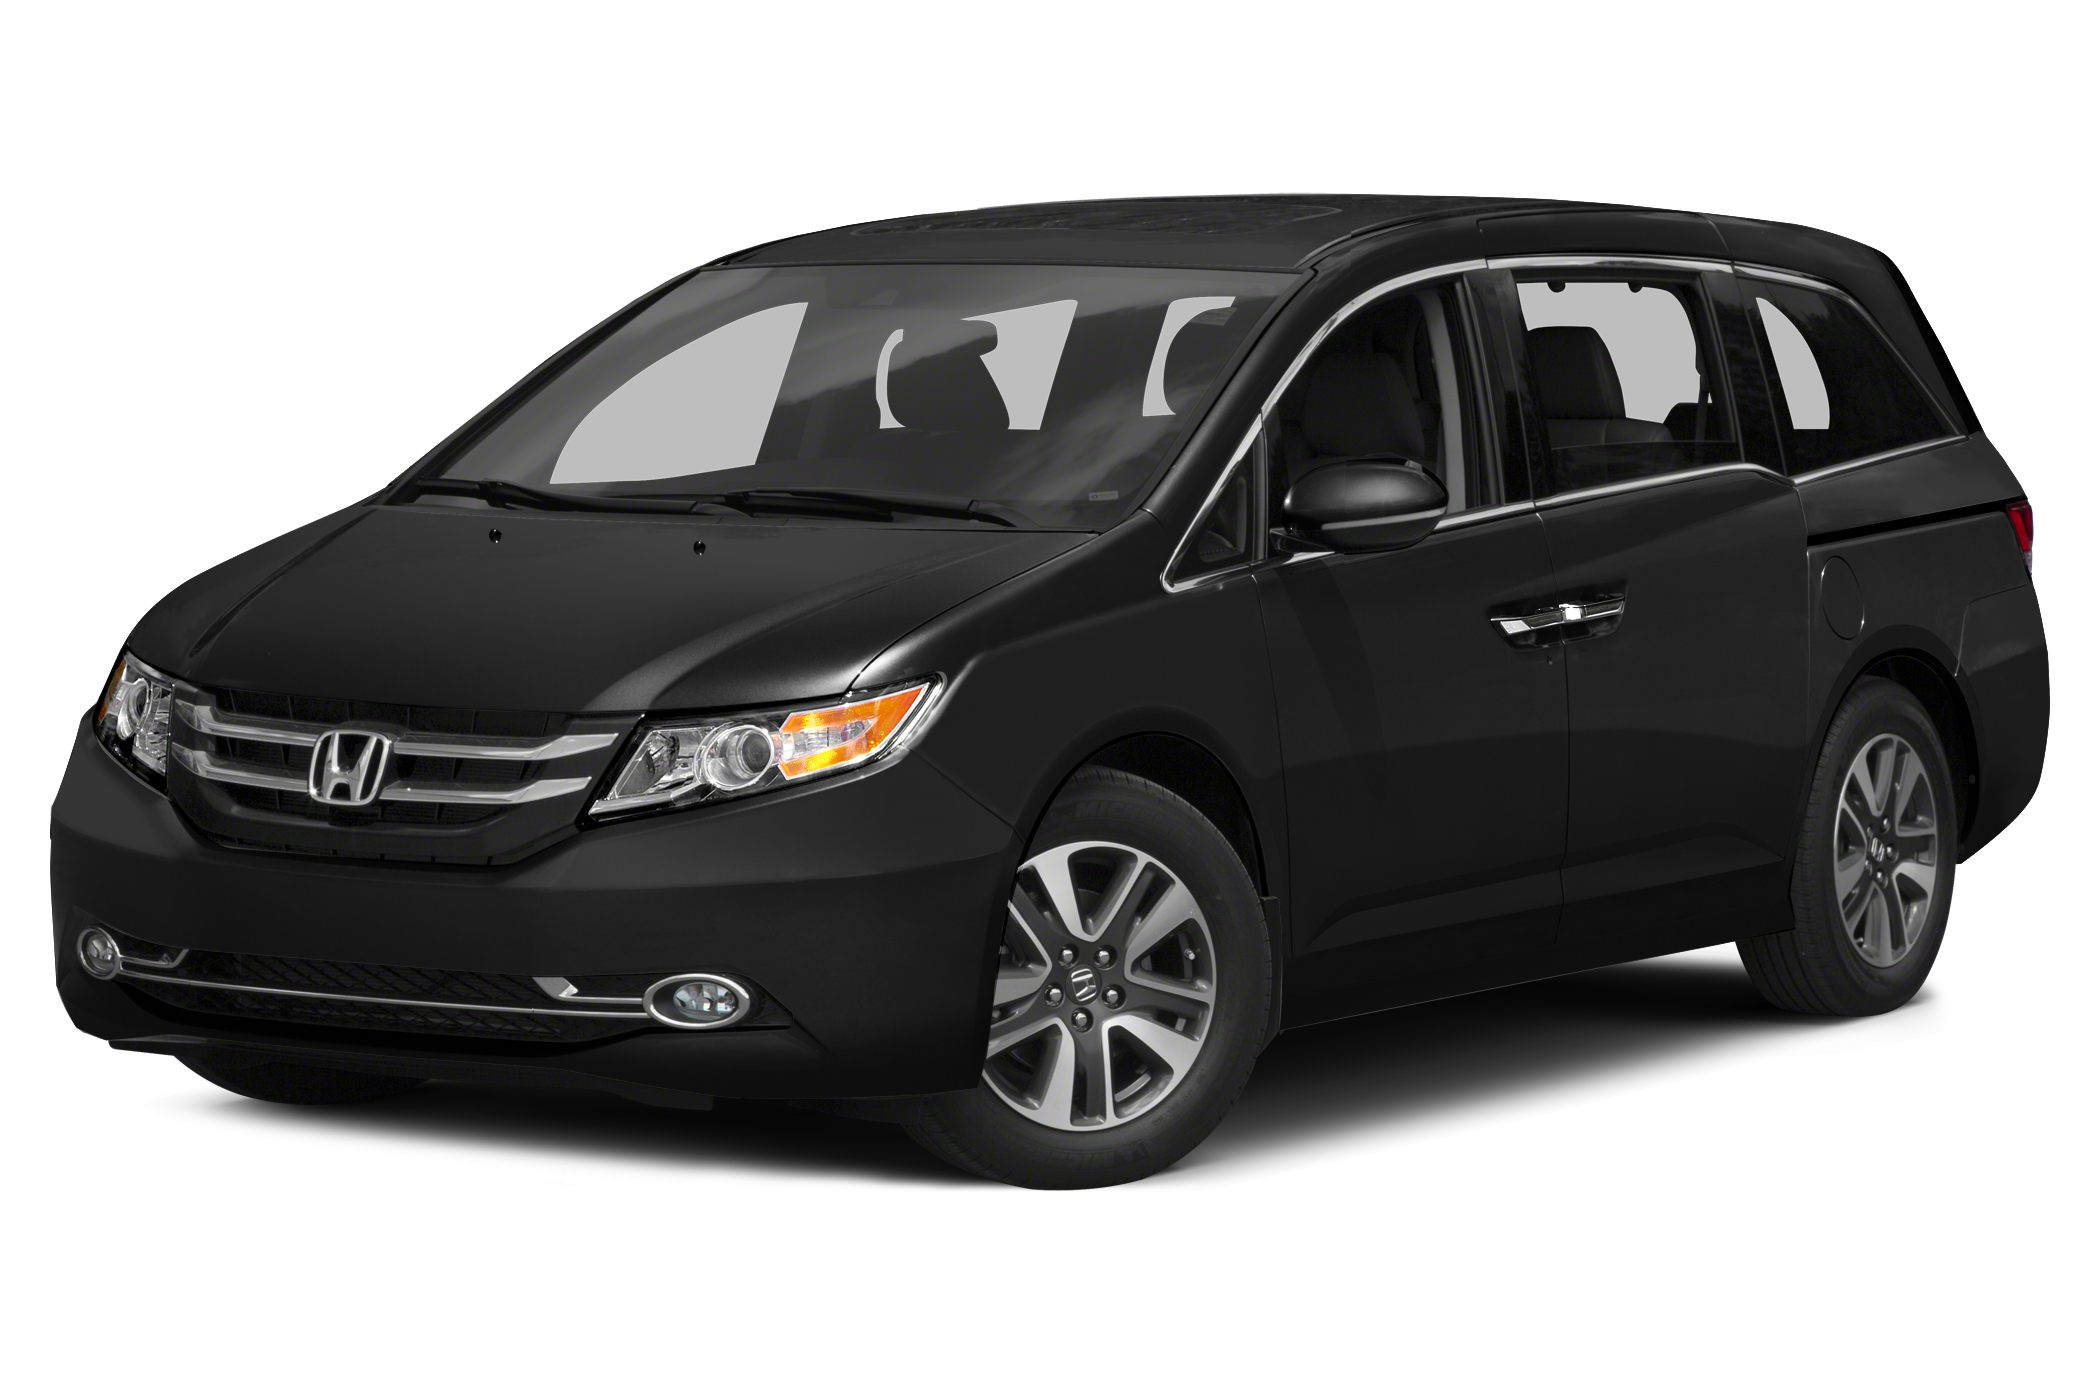 2014 Honda Odyssey Touring Elite Minivan for sale in Summersville for $39,777 with 4,123 miles.